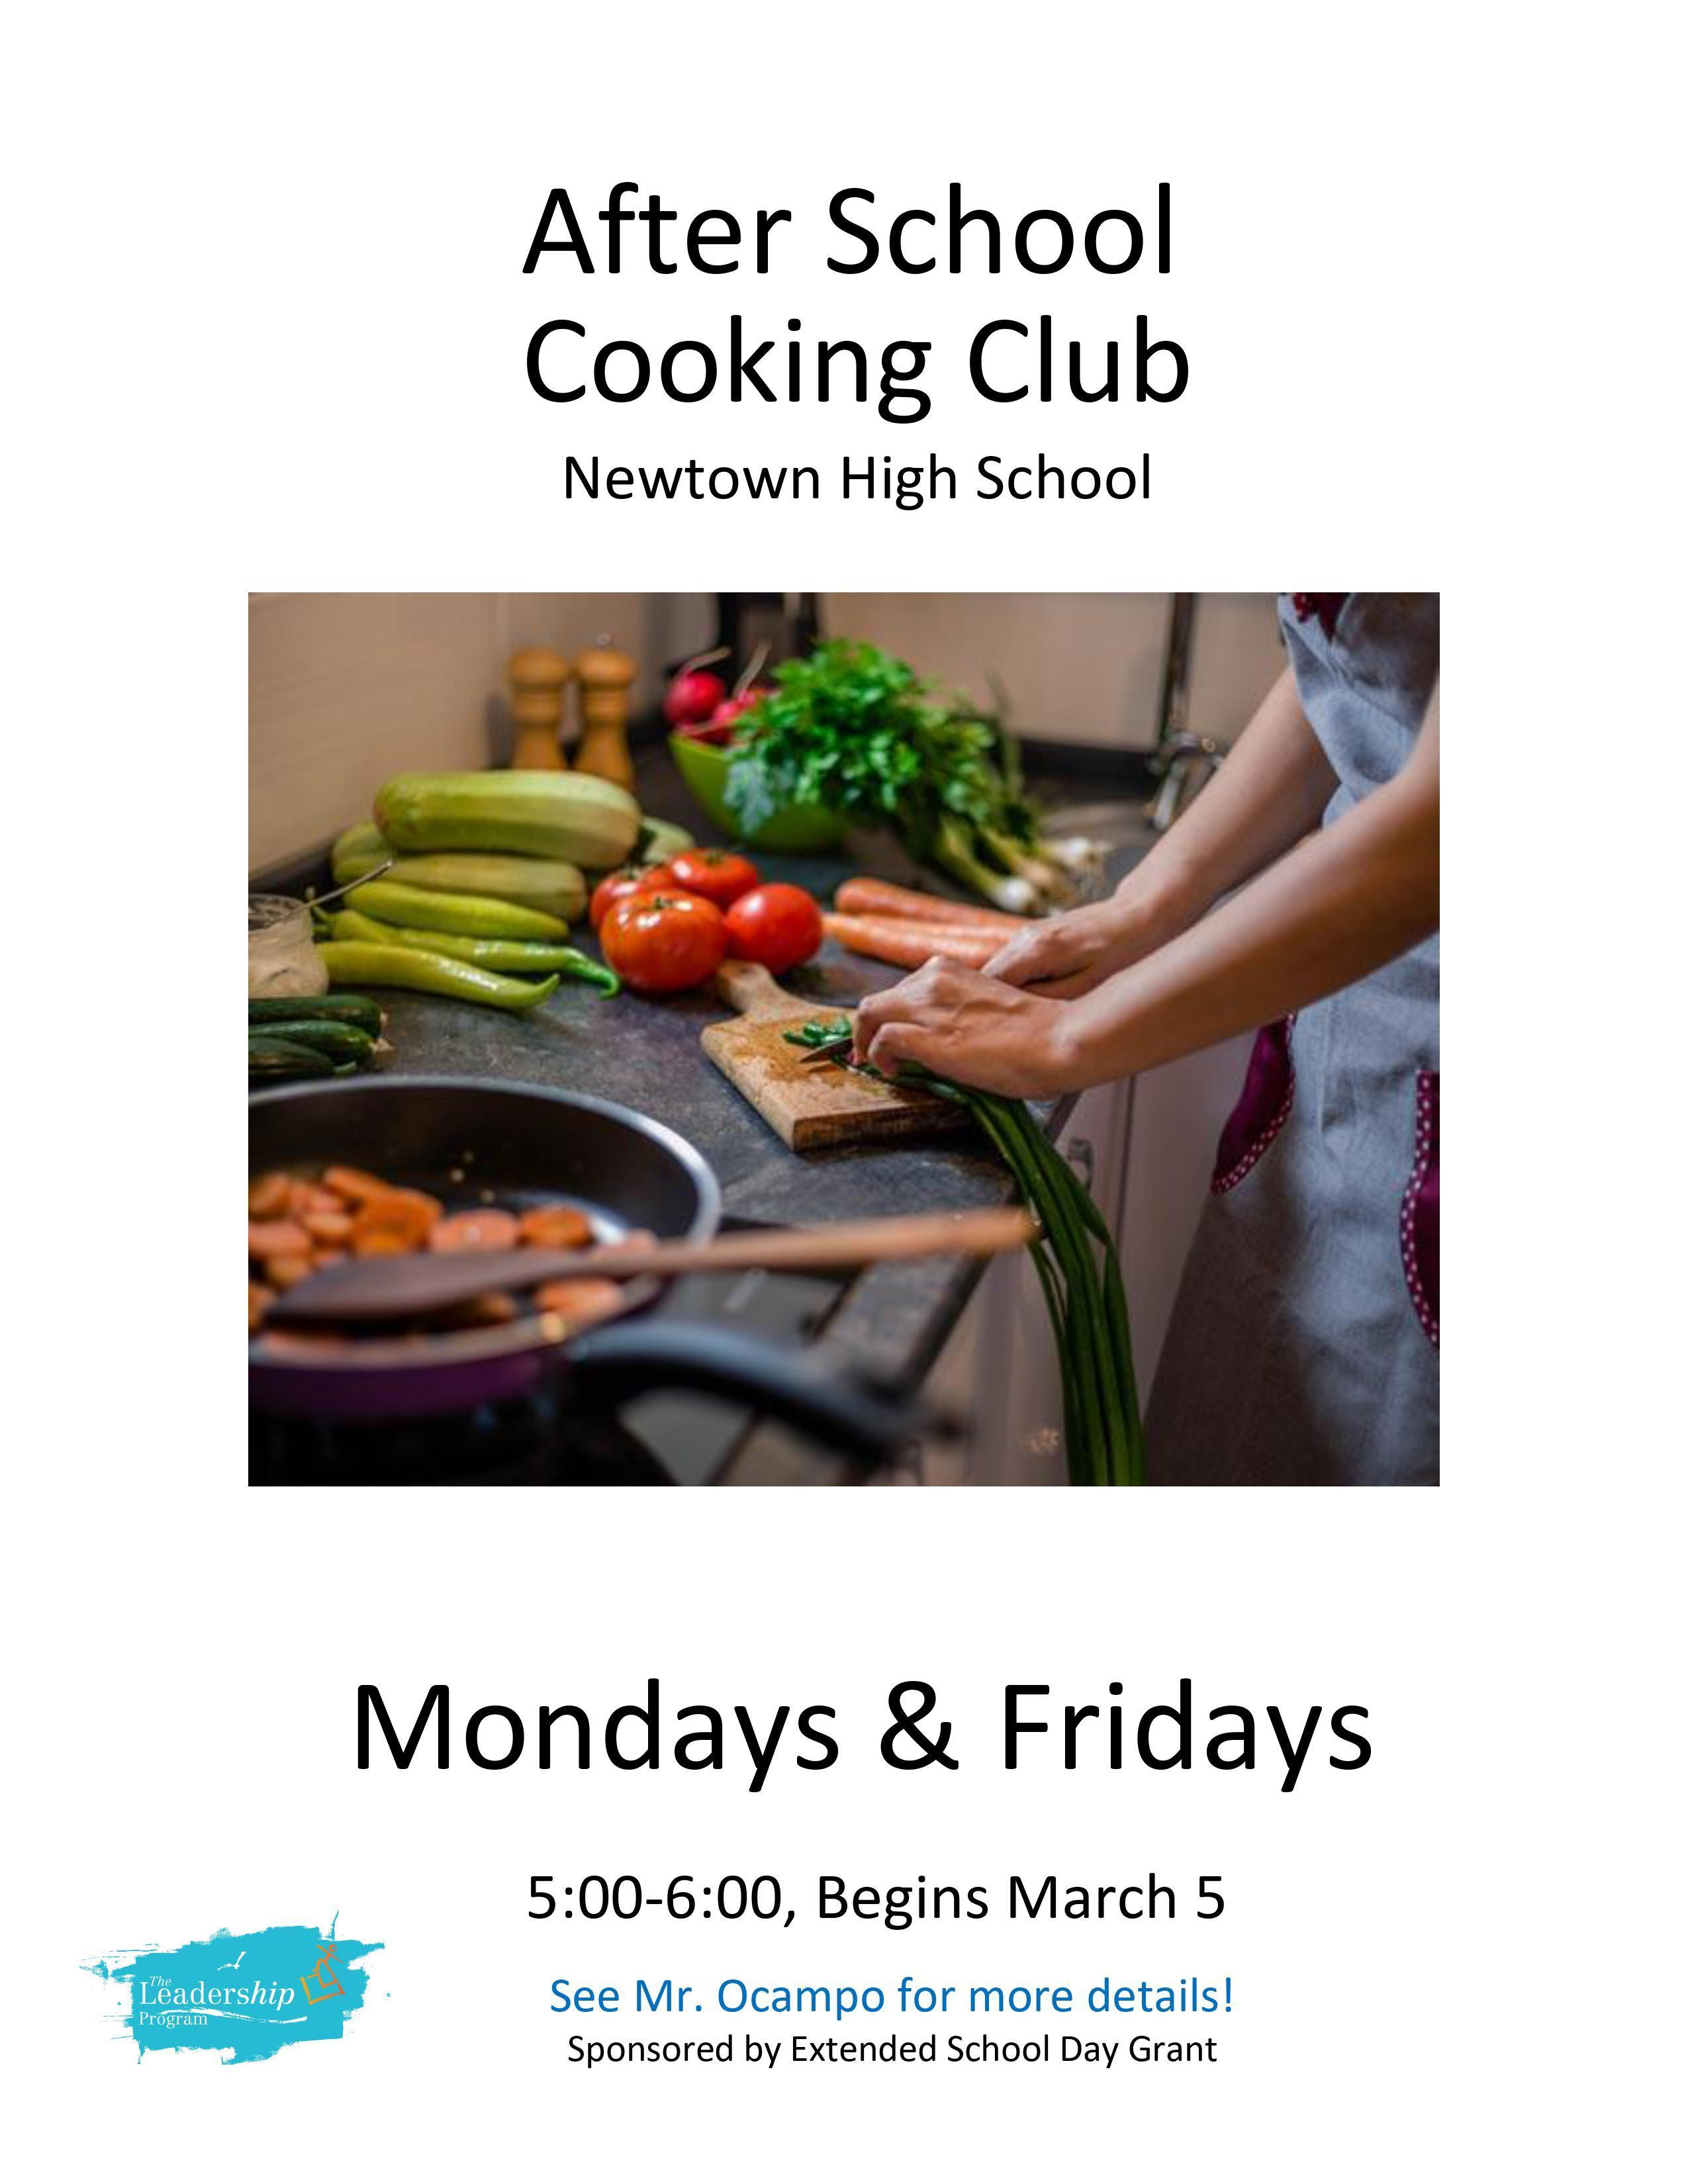 After School Cooking Club, Mon & Fri, 5-6, Begins March 5. See Mr. Ocampo for details.